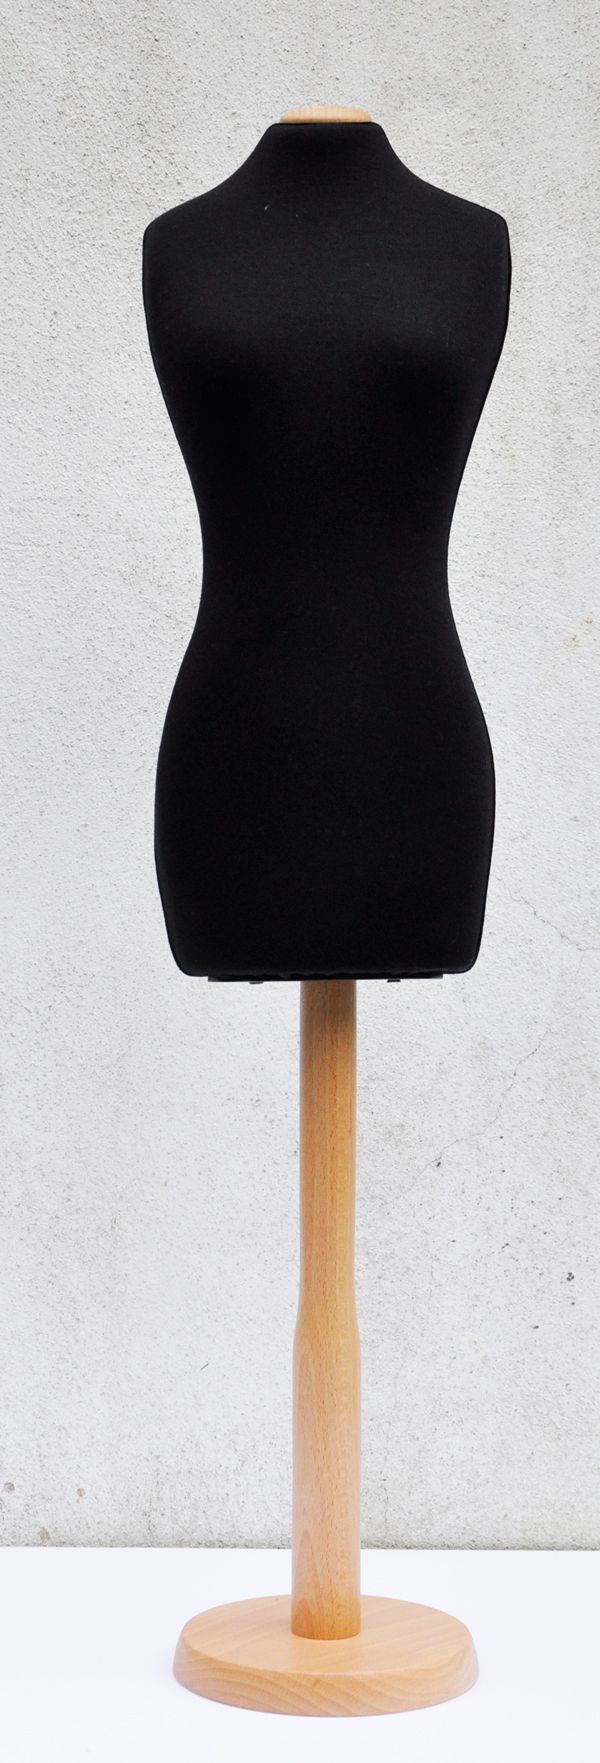 Black Half scale pinnable dressmakers mannequin